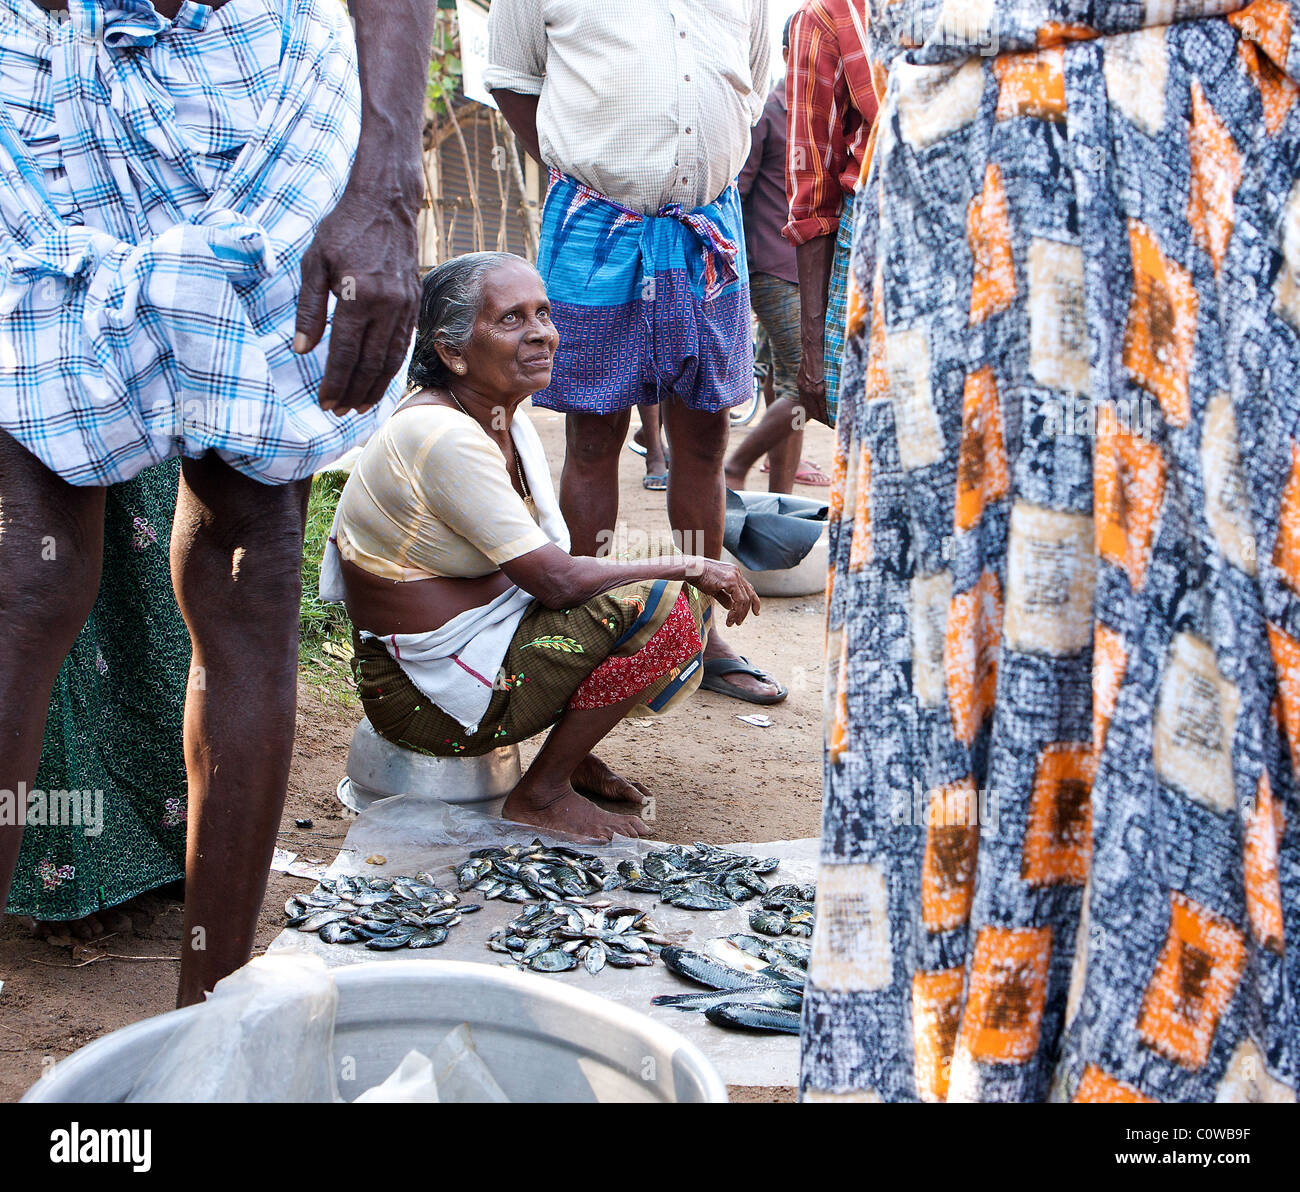 An old Keralite woman waits to sell her fish at a roadside fish market in the Backwaters, Kochi, Kerala, India - Stock Image